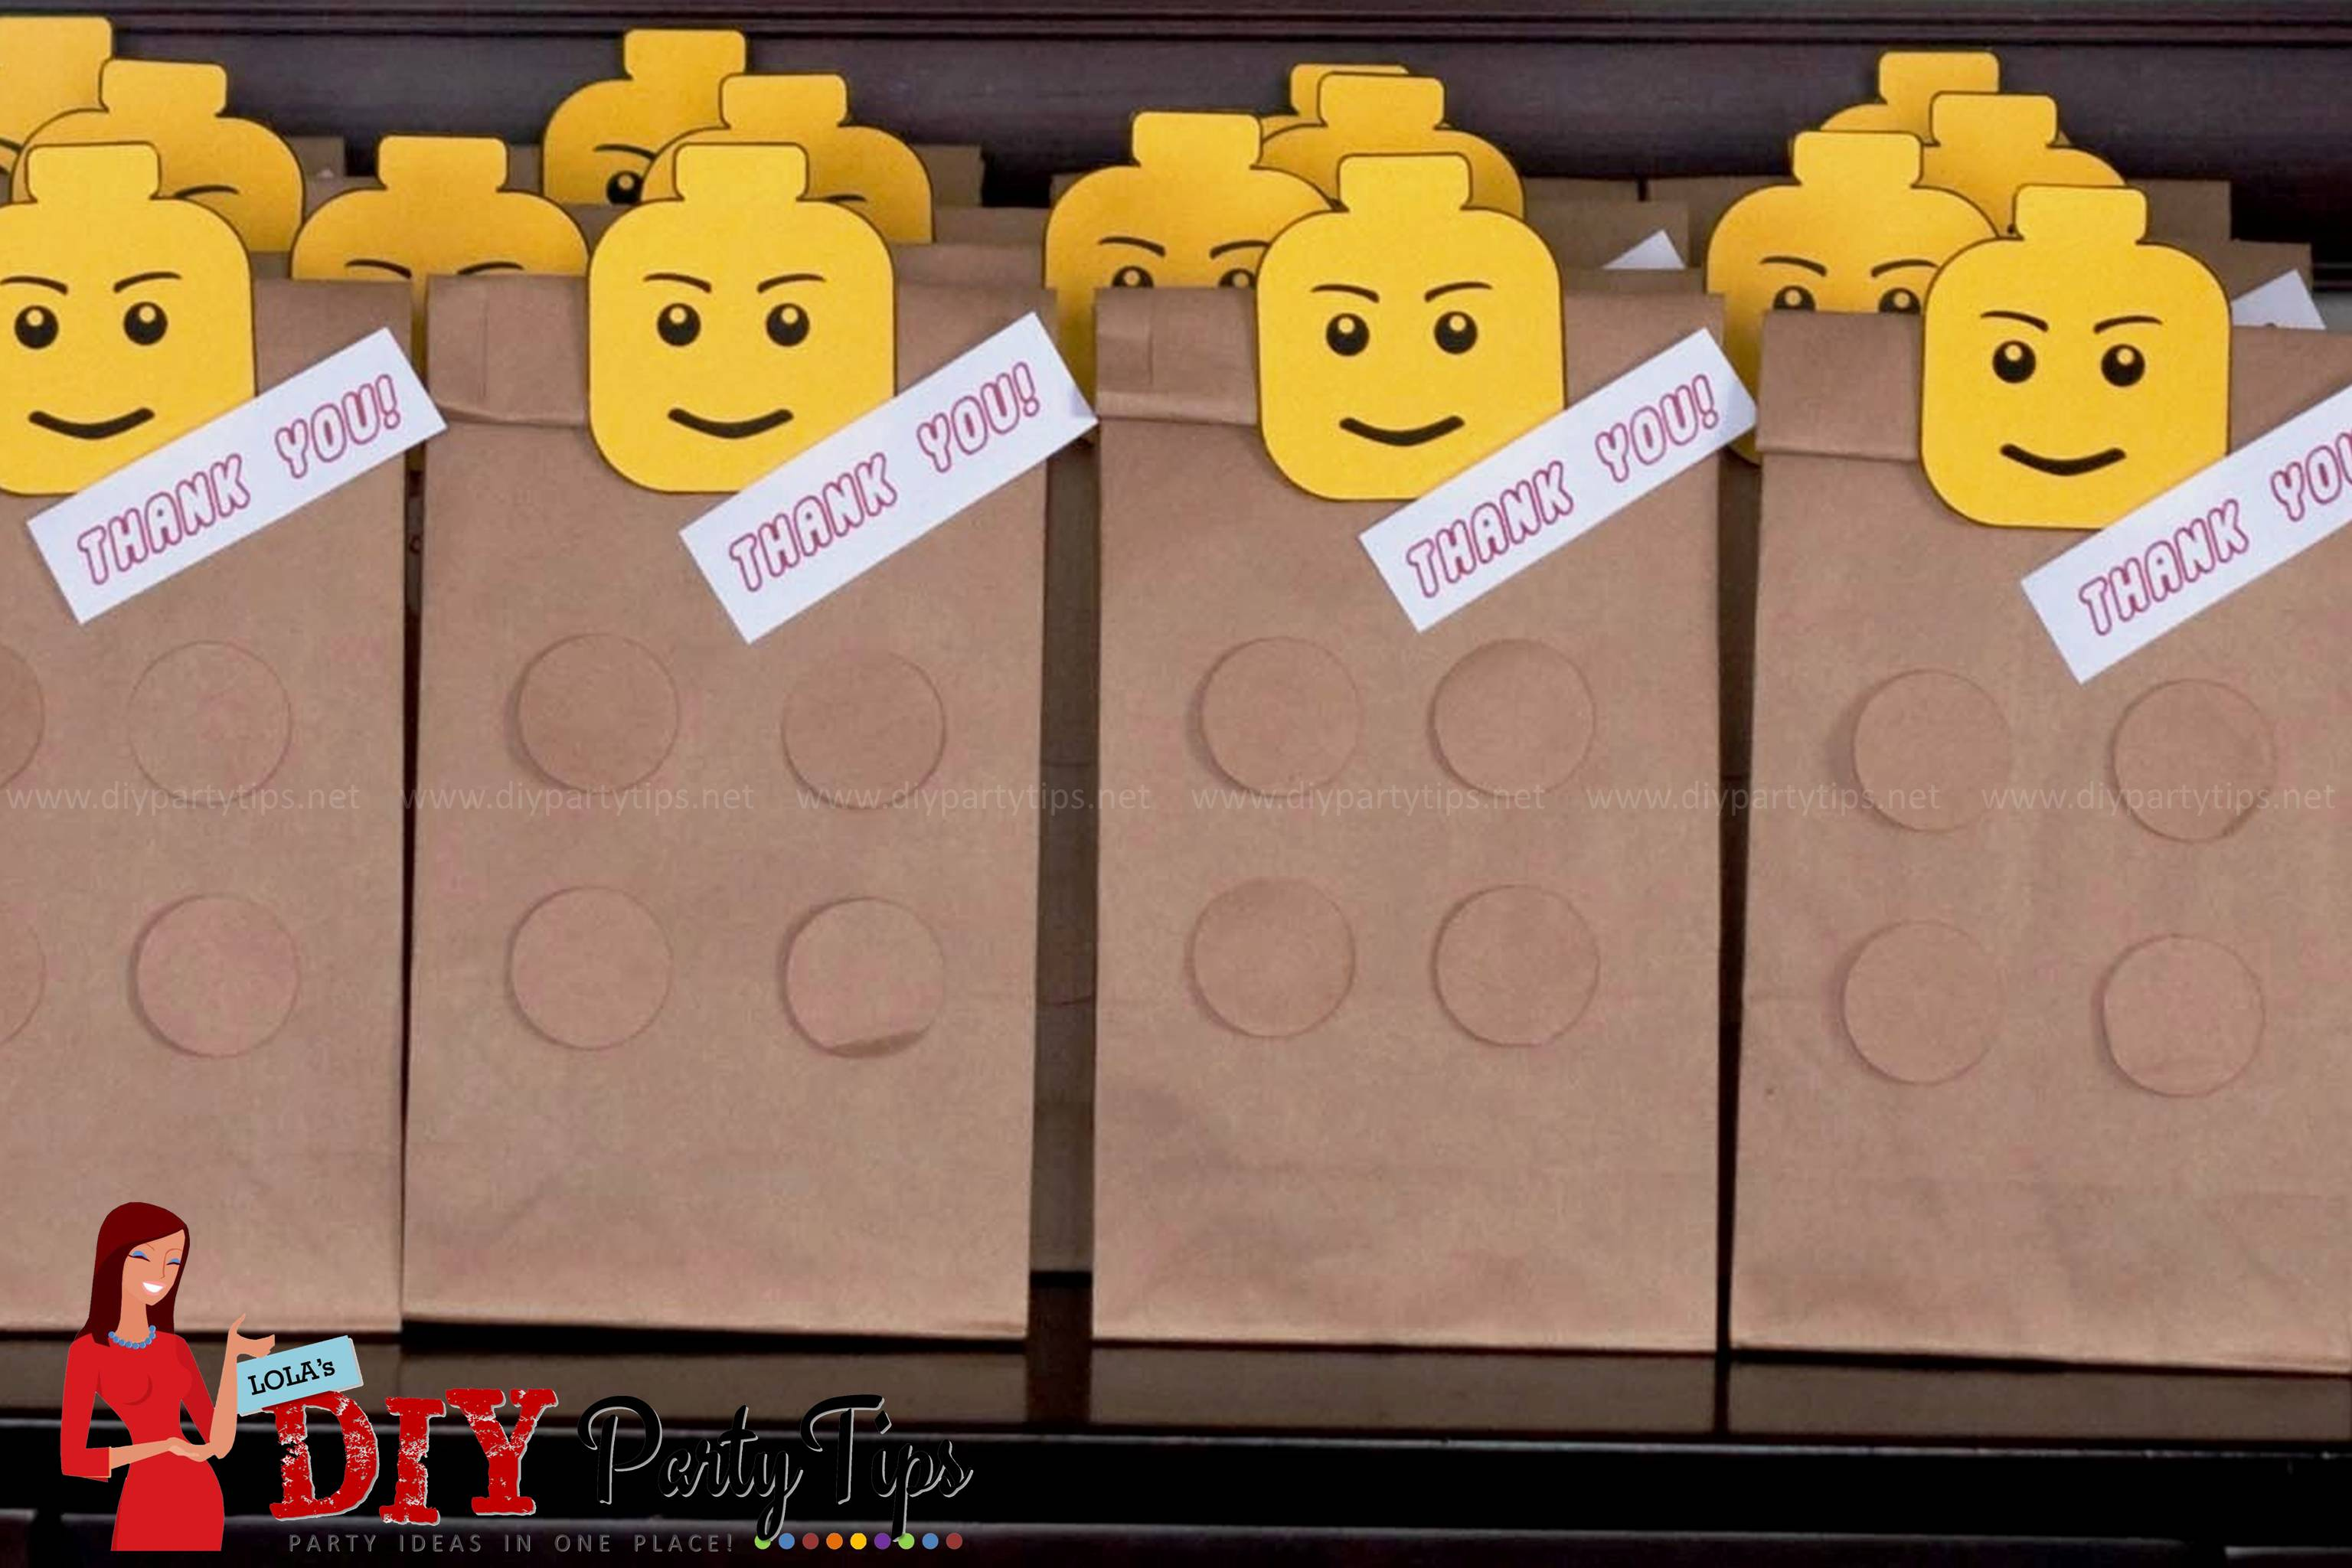 image about Lego Party Printable identify Free of charge PRINTABLE: Lego Social gathering Lootbags Lolas Do-it-yourself Bash Recommendations